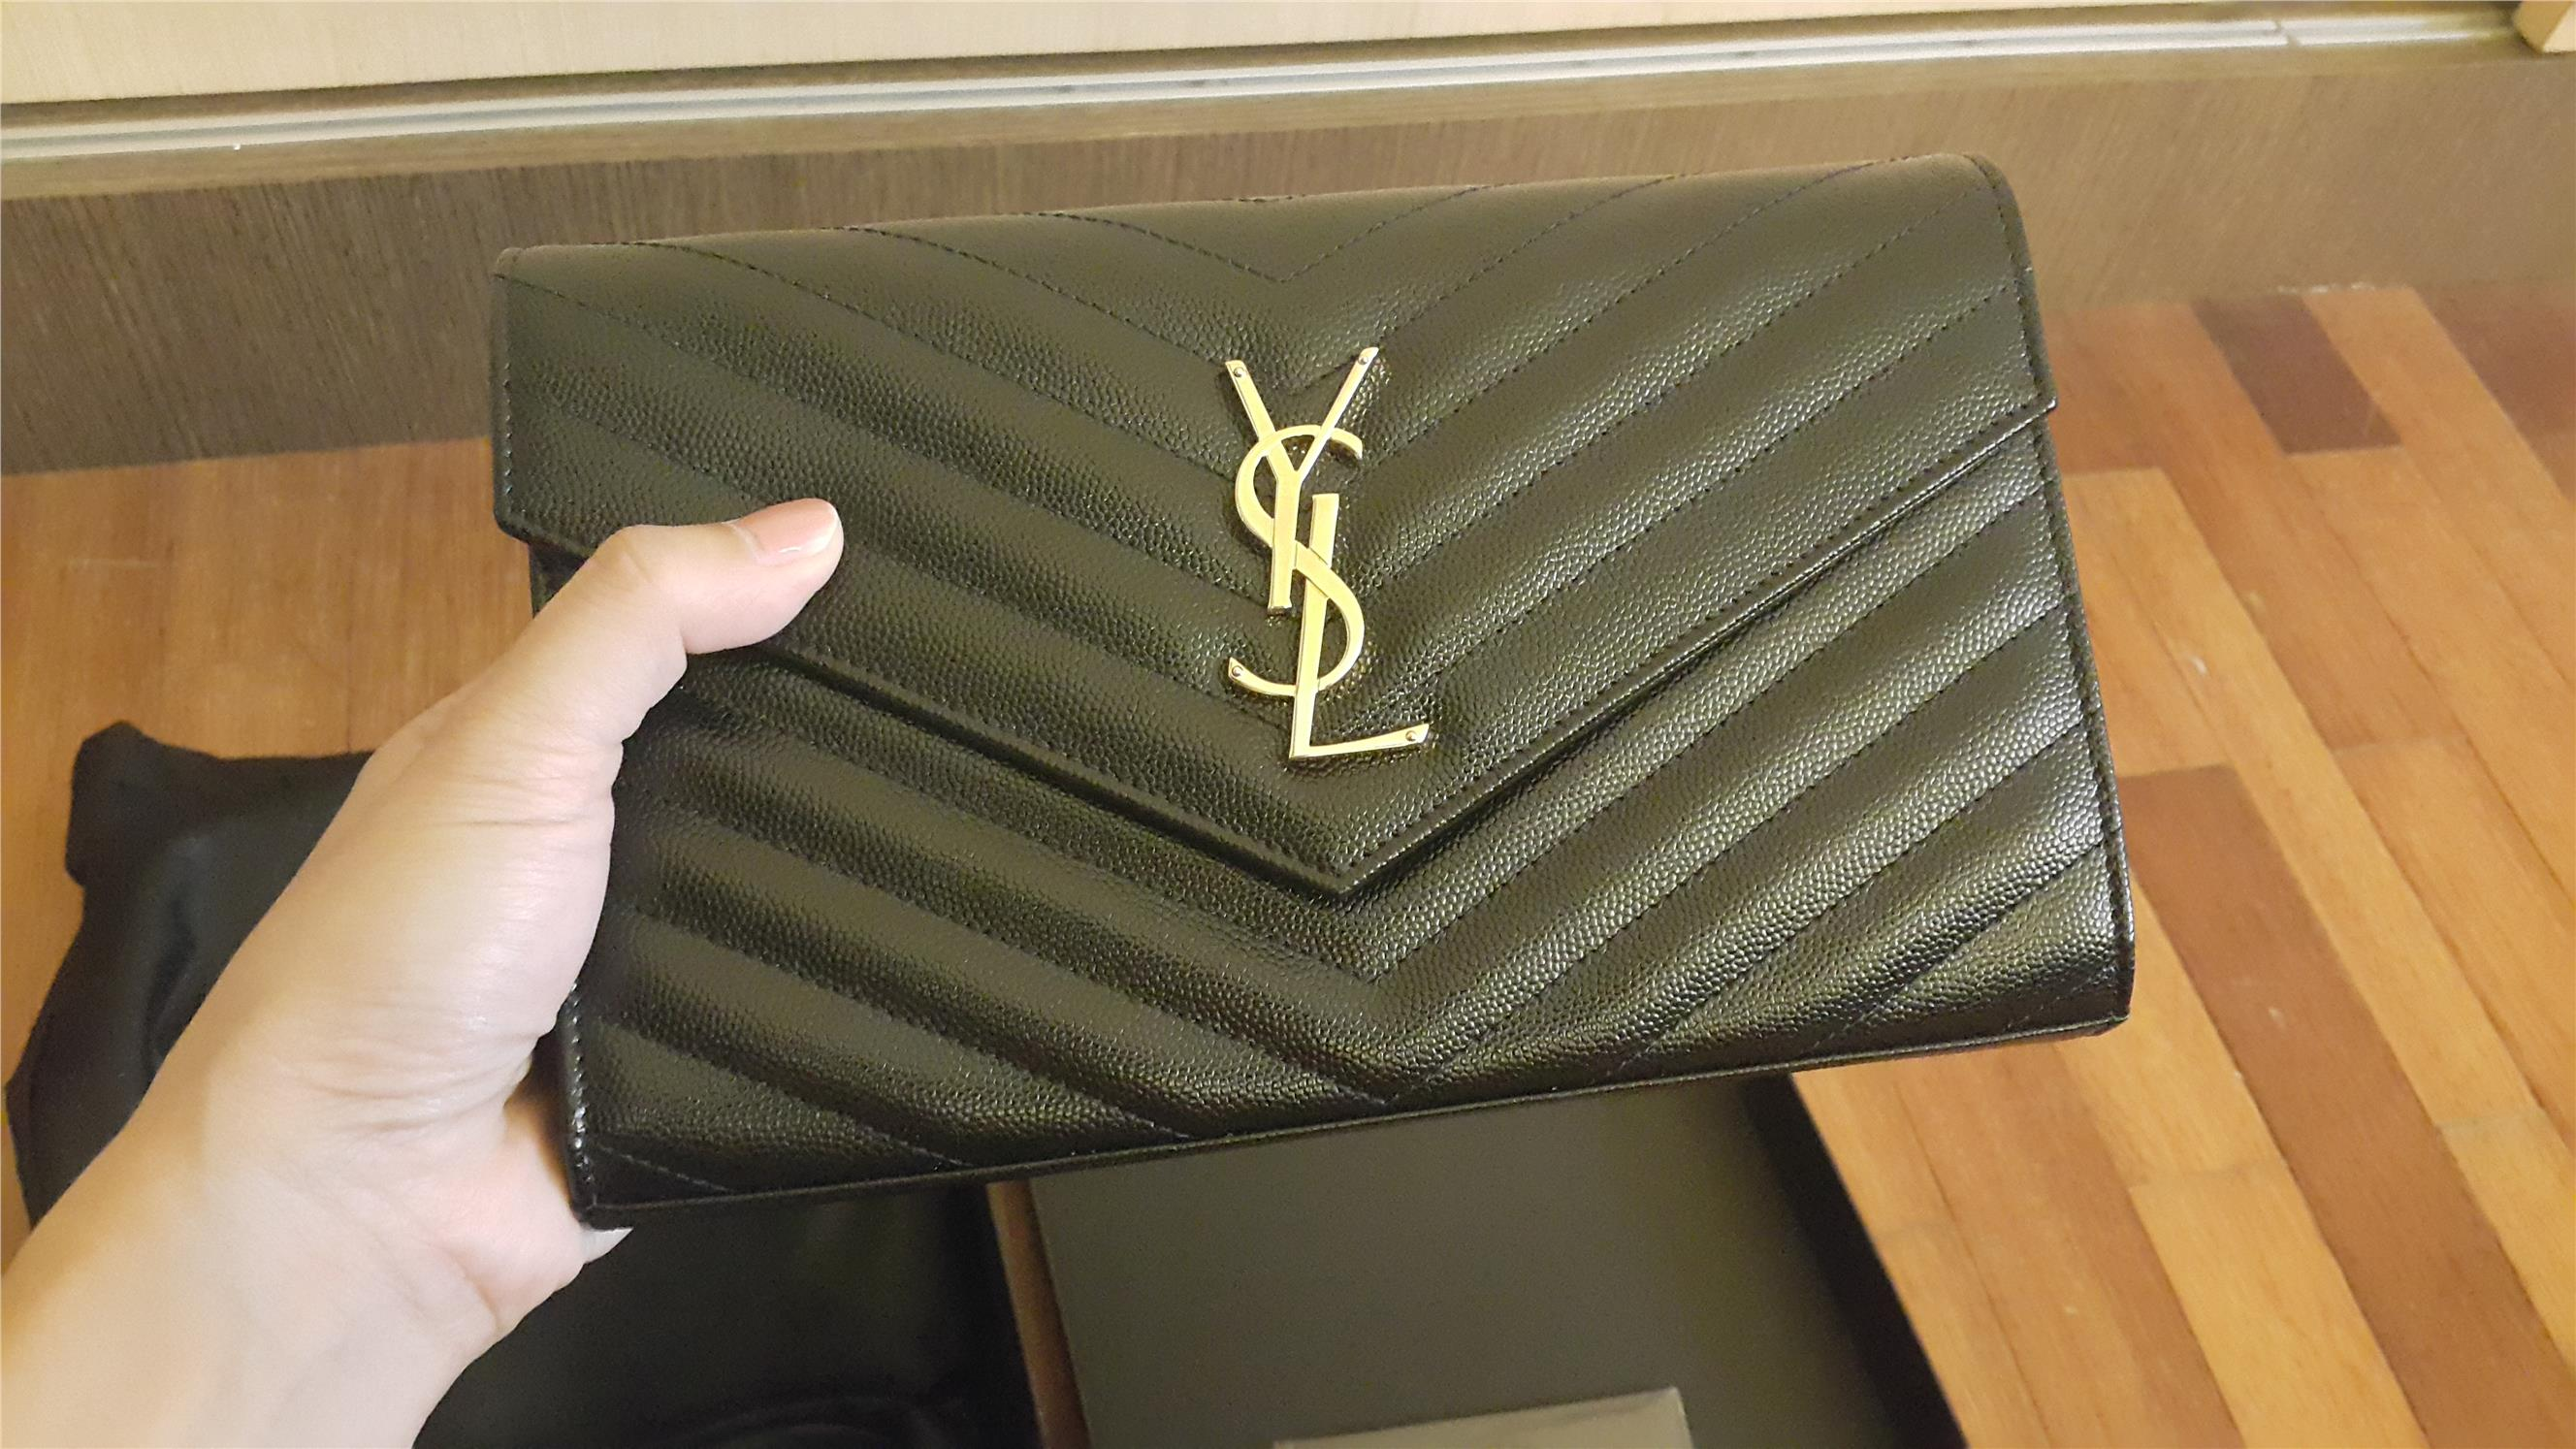 discount ysl handbags - ysl bags price in malaysia